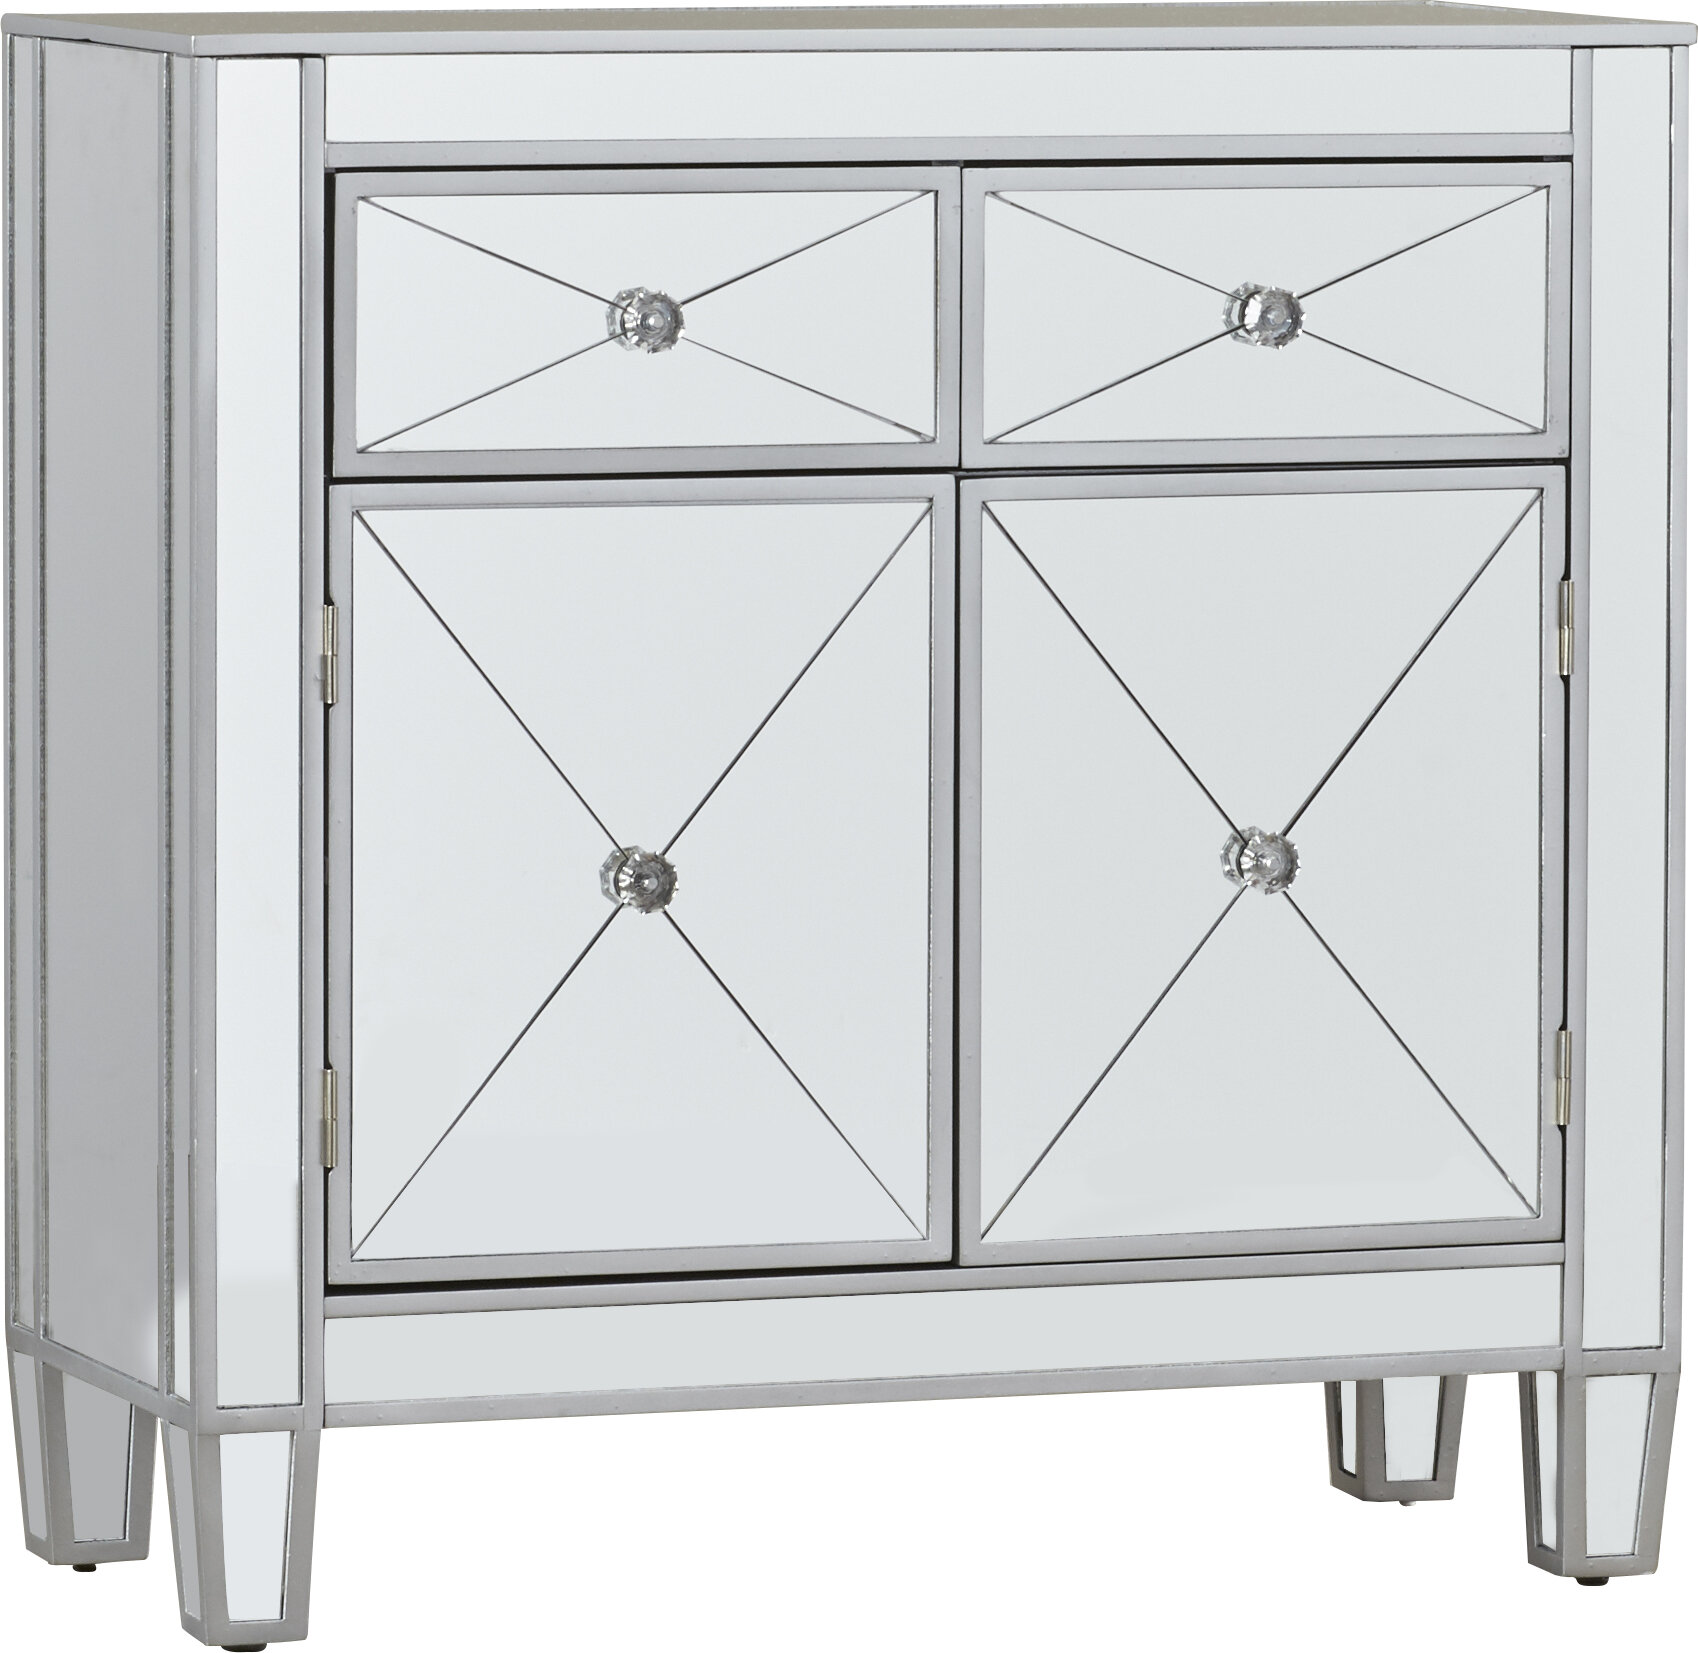 Bon Home U0026 Haus Mirage Mirrored Cabinet U0026 Reviews | Wayfair.co.uk